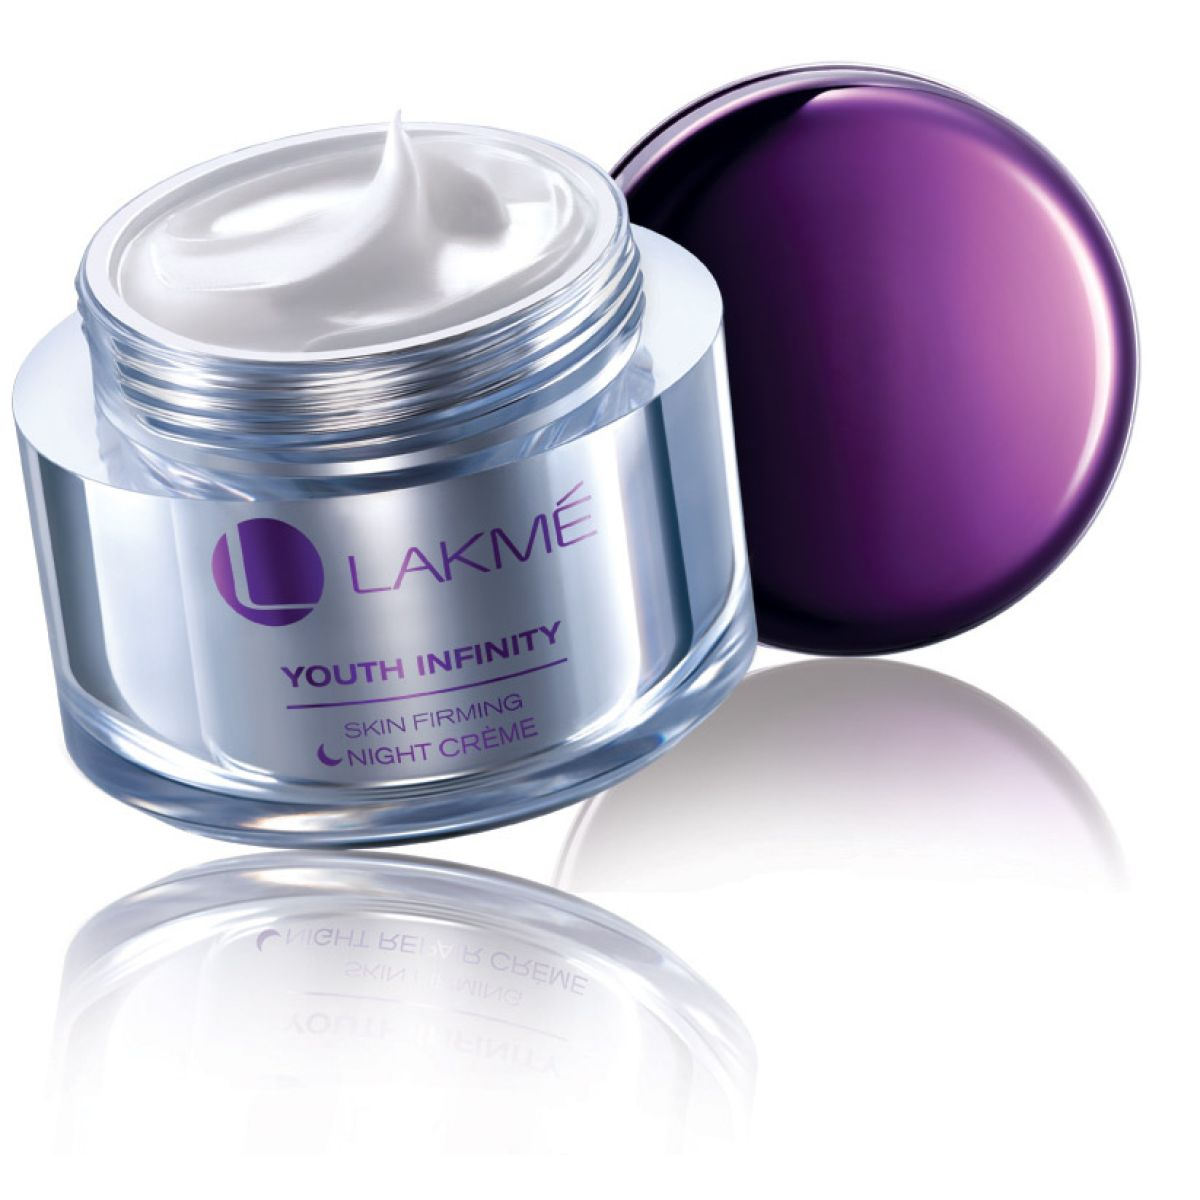 Lakme Youth Infinity Skin Firming Night Creme (50g)